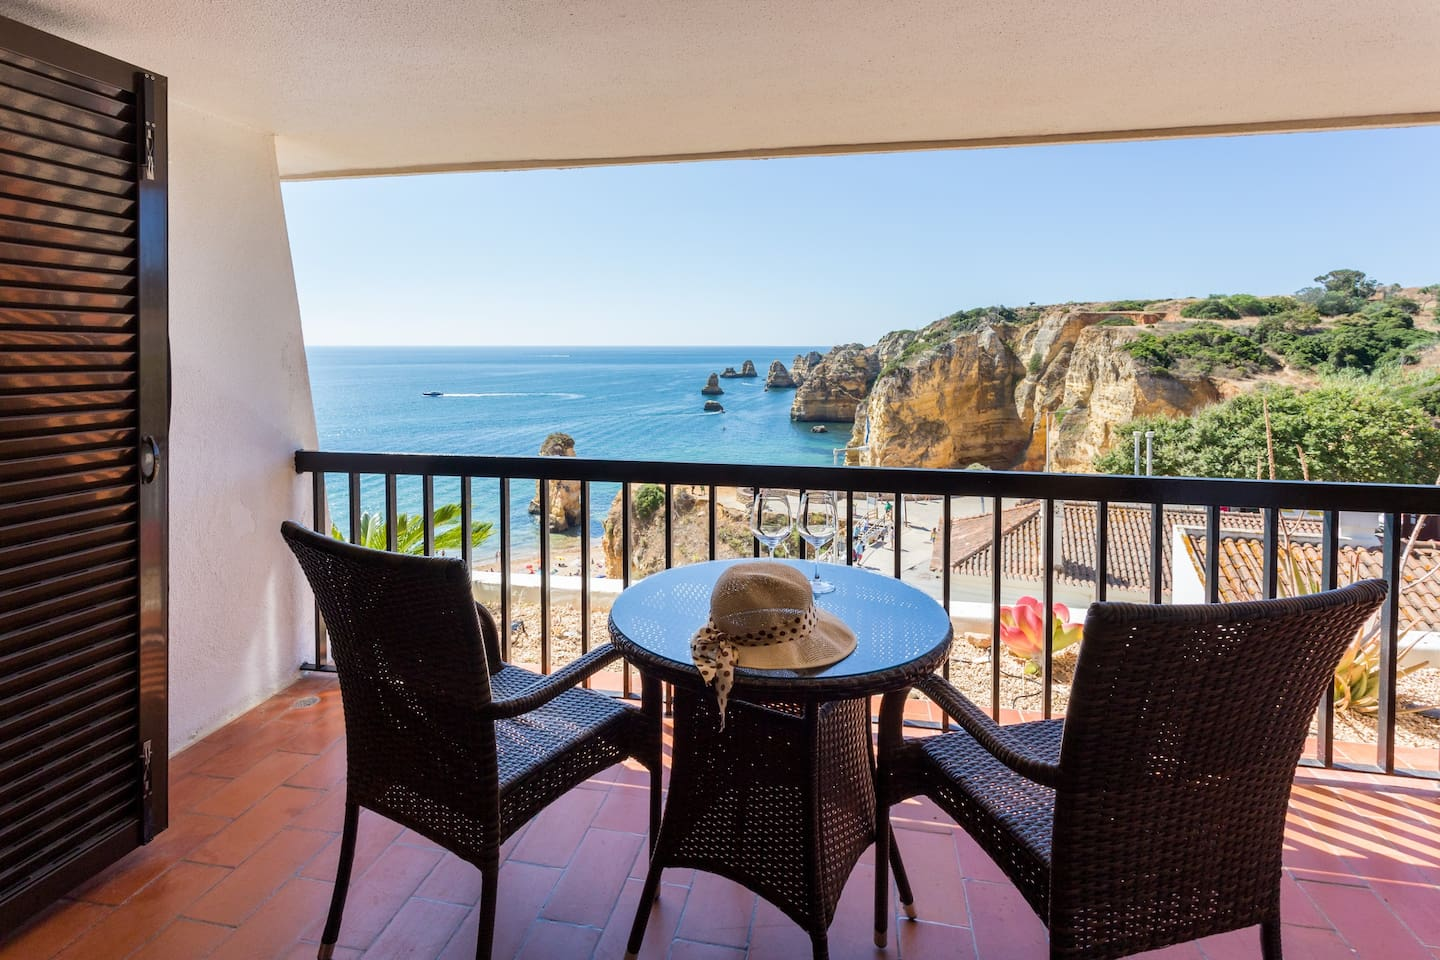 Ideal for couples who love ocean views, walking, and relaxing in one of the most beautiful places in Lagos, Portugal.